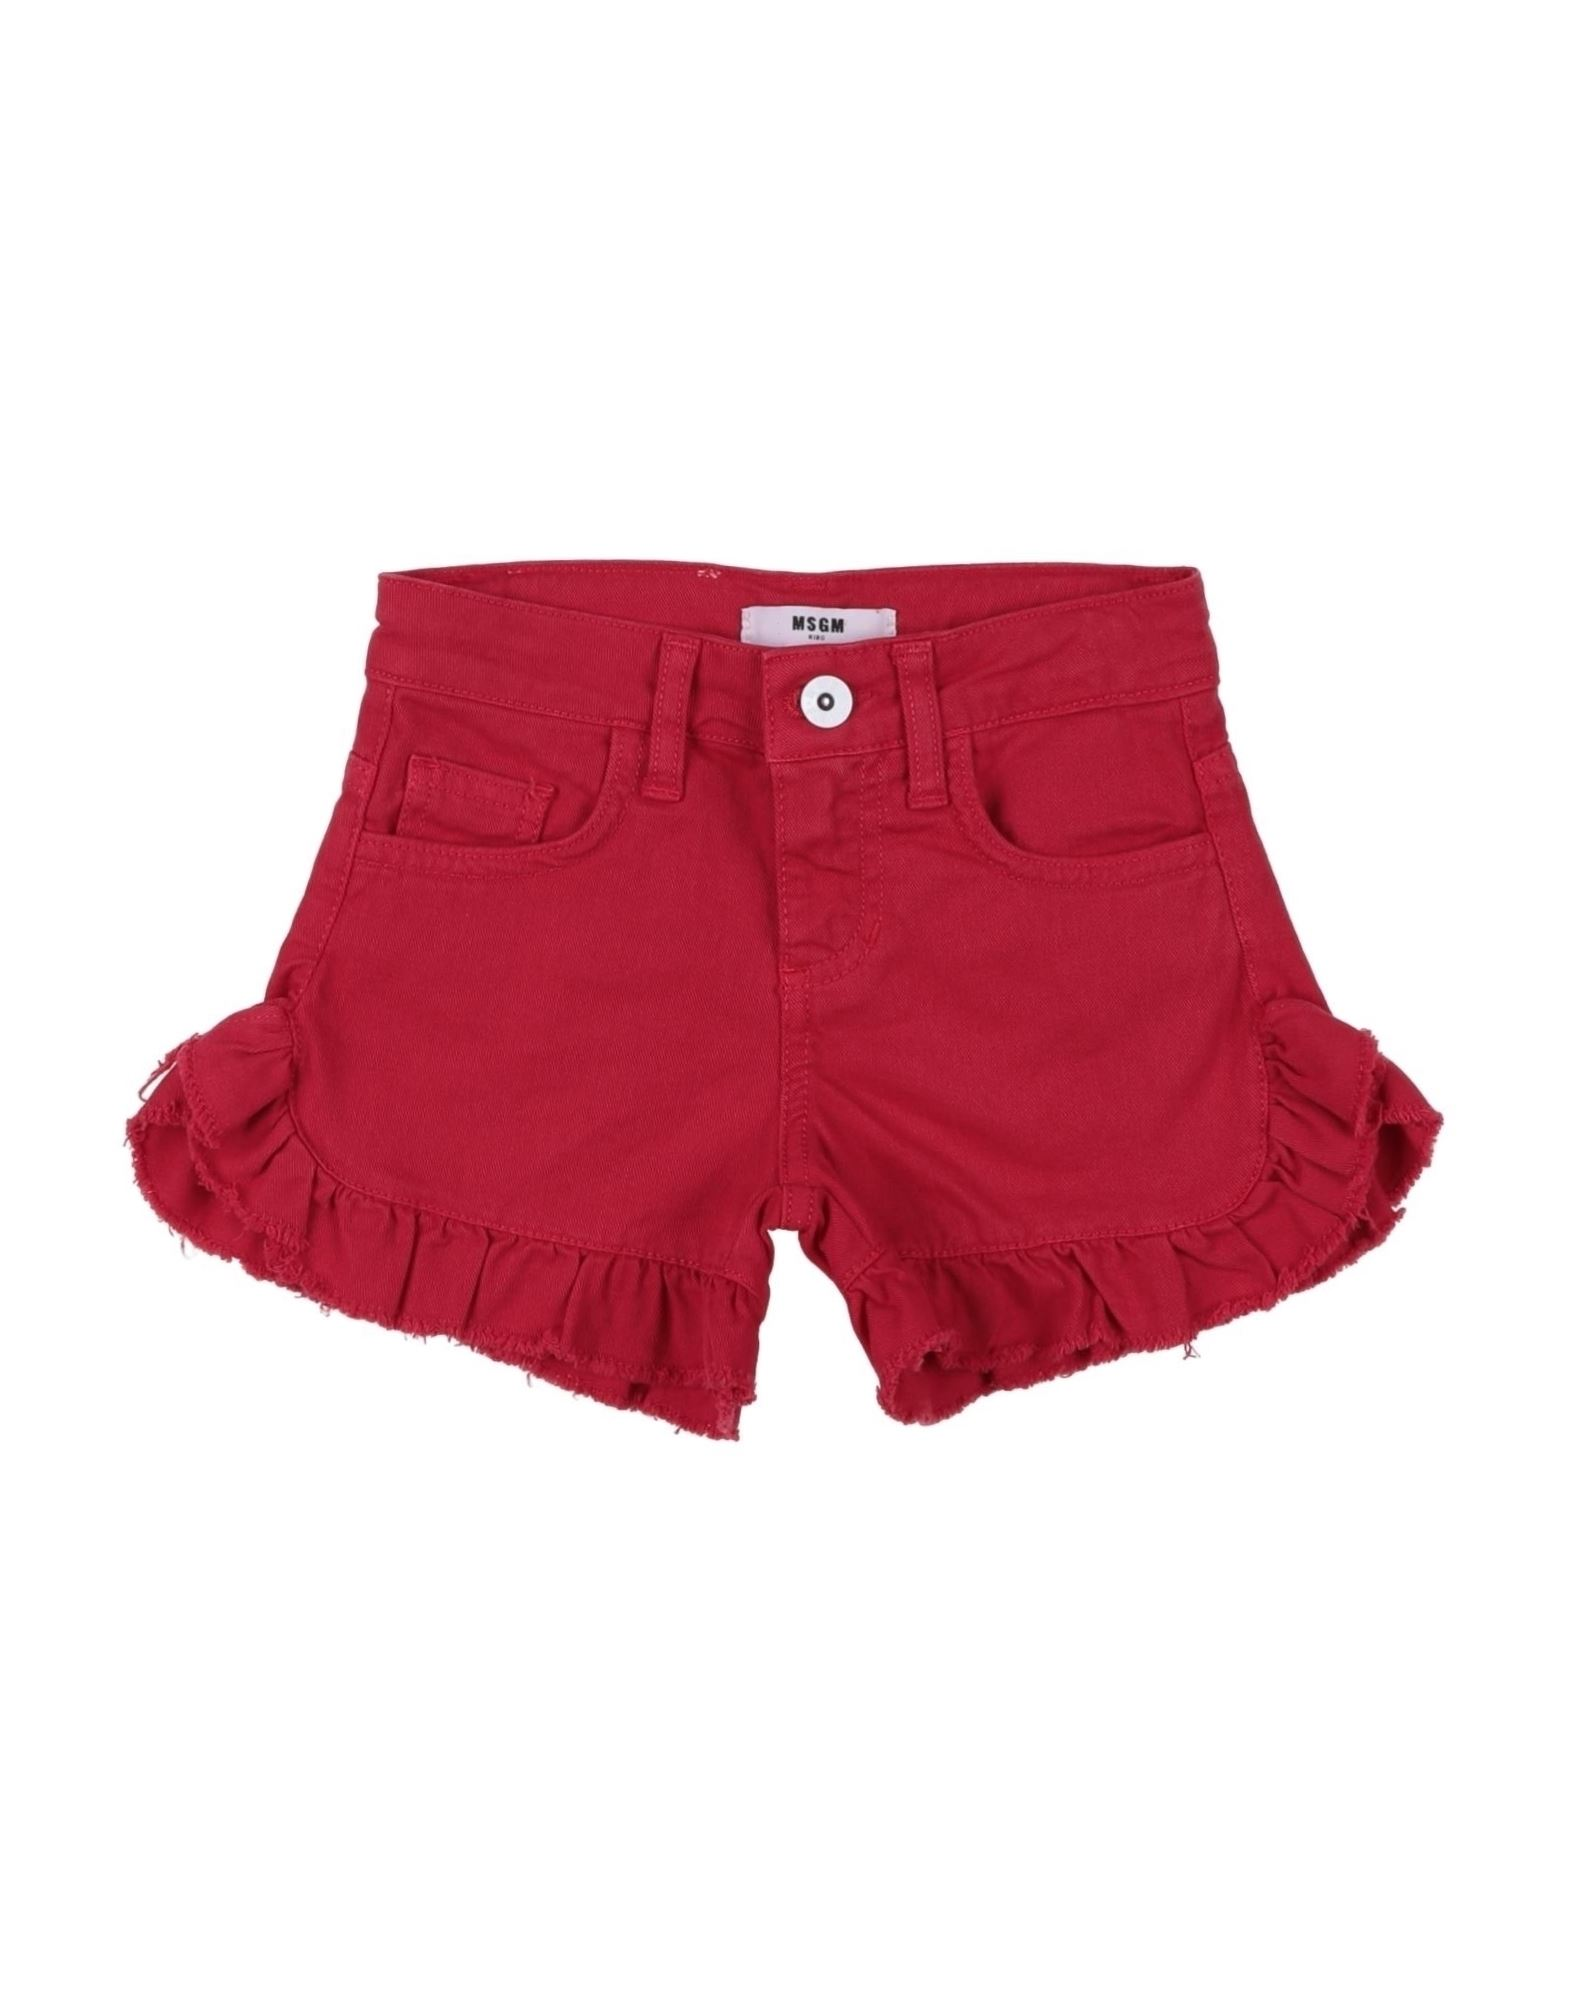 MSGM Shorts. gabardine, ruffles, logo, solid color, mid rise, regular fit, button, zip, multipockets, stretch, hand wash, do not dry clean, iron at 110degree c max, do not bleach, do not tumble dry. 97% Cotton, 3% Elastane